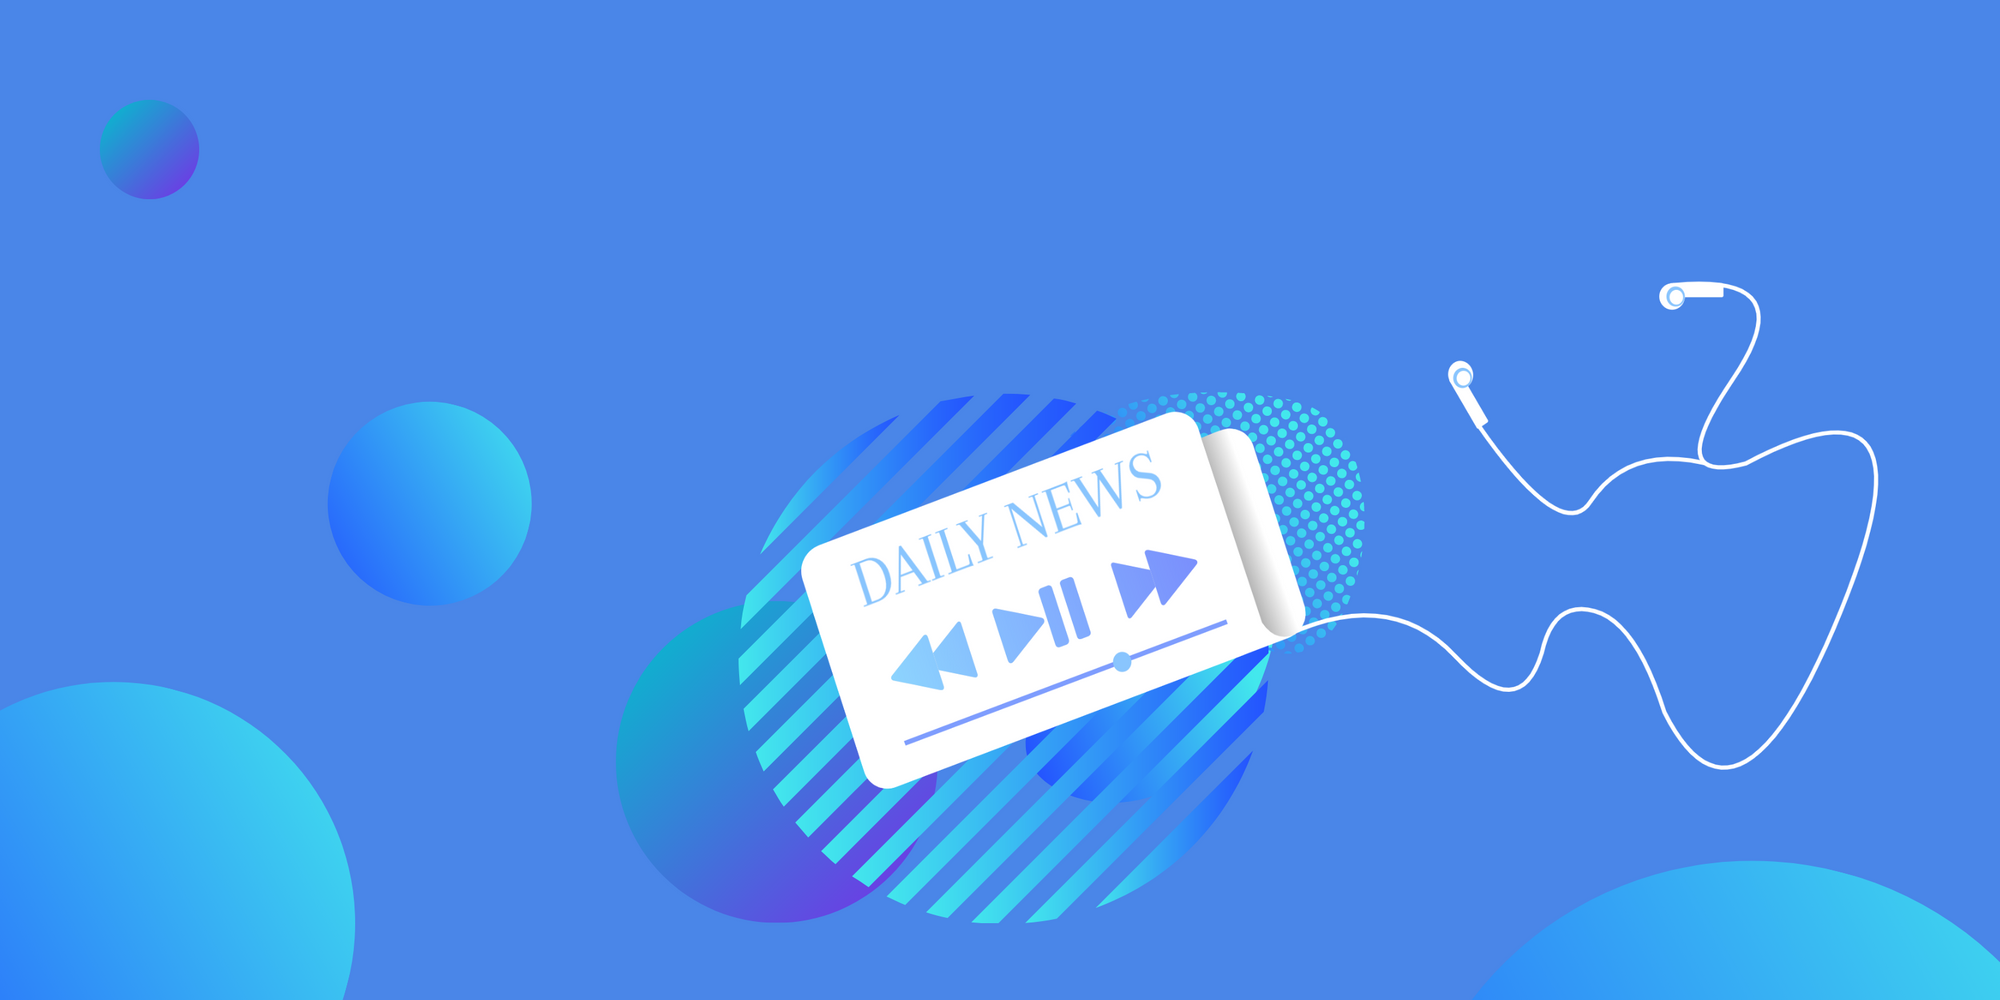 Daily News-audio-podcast-illustration-headphones-earbuds-TTS